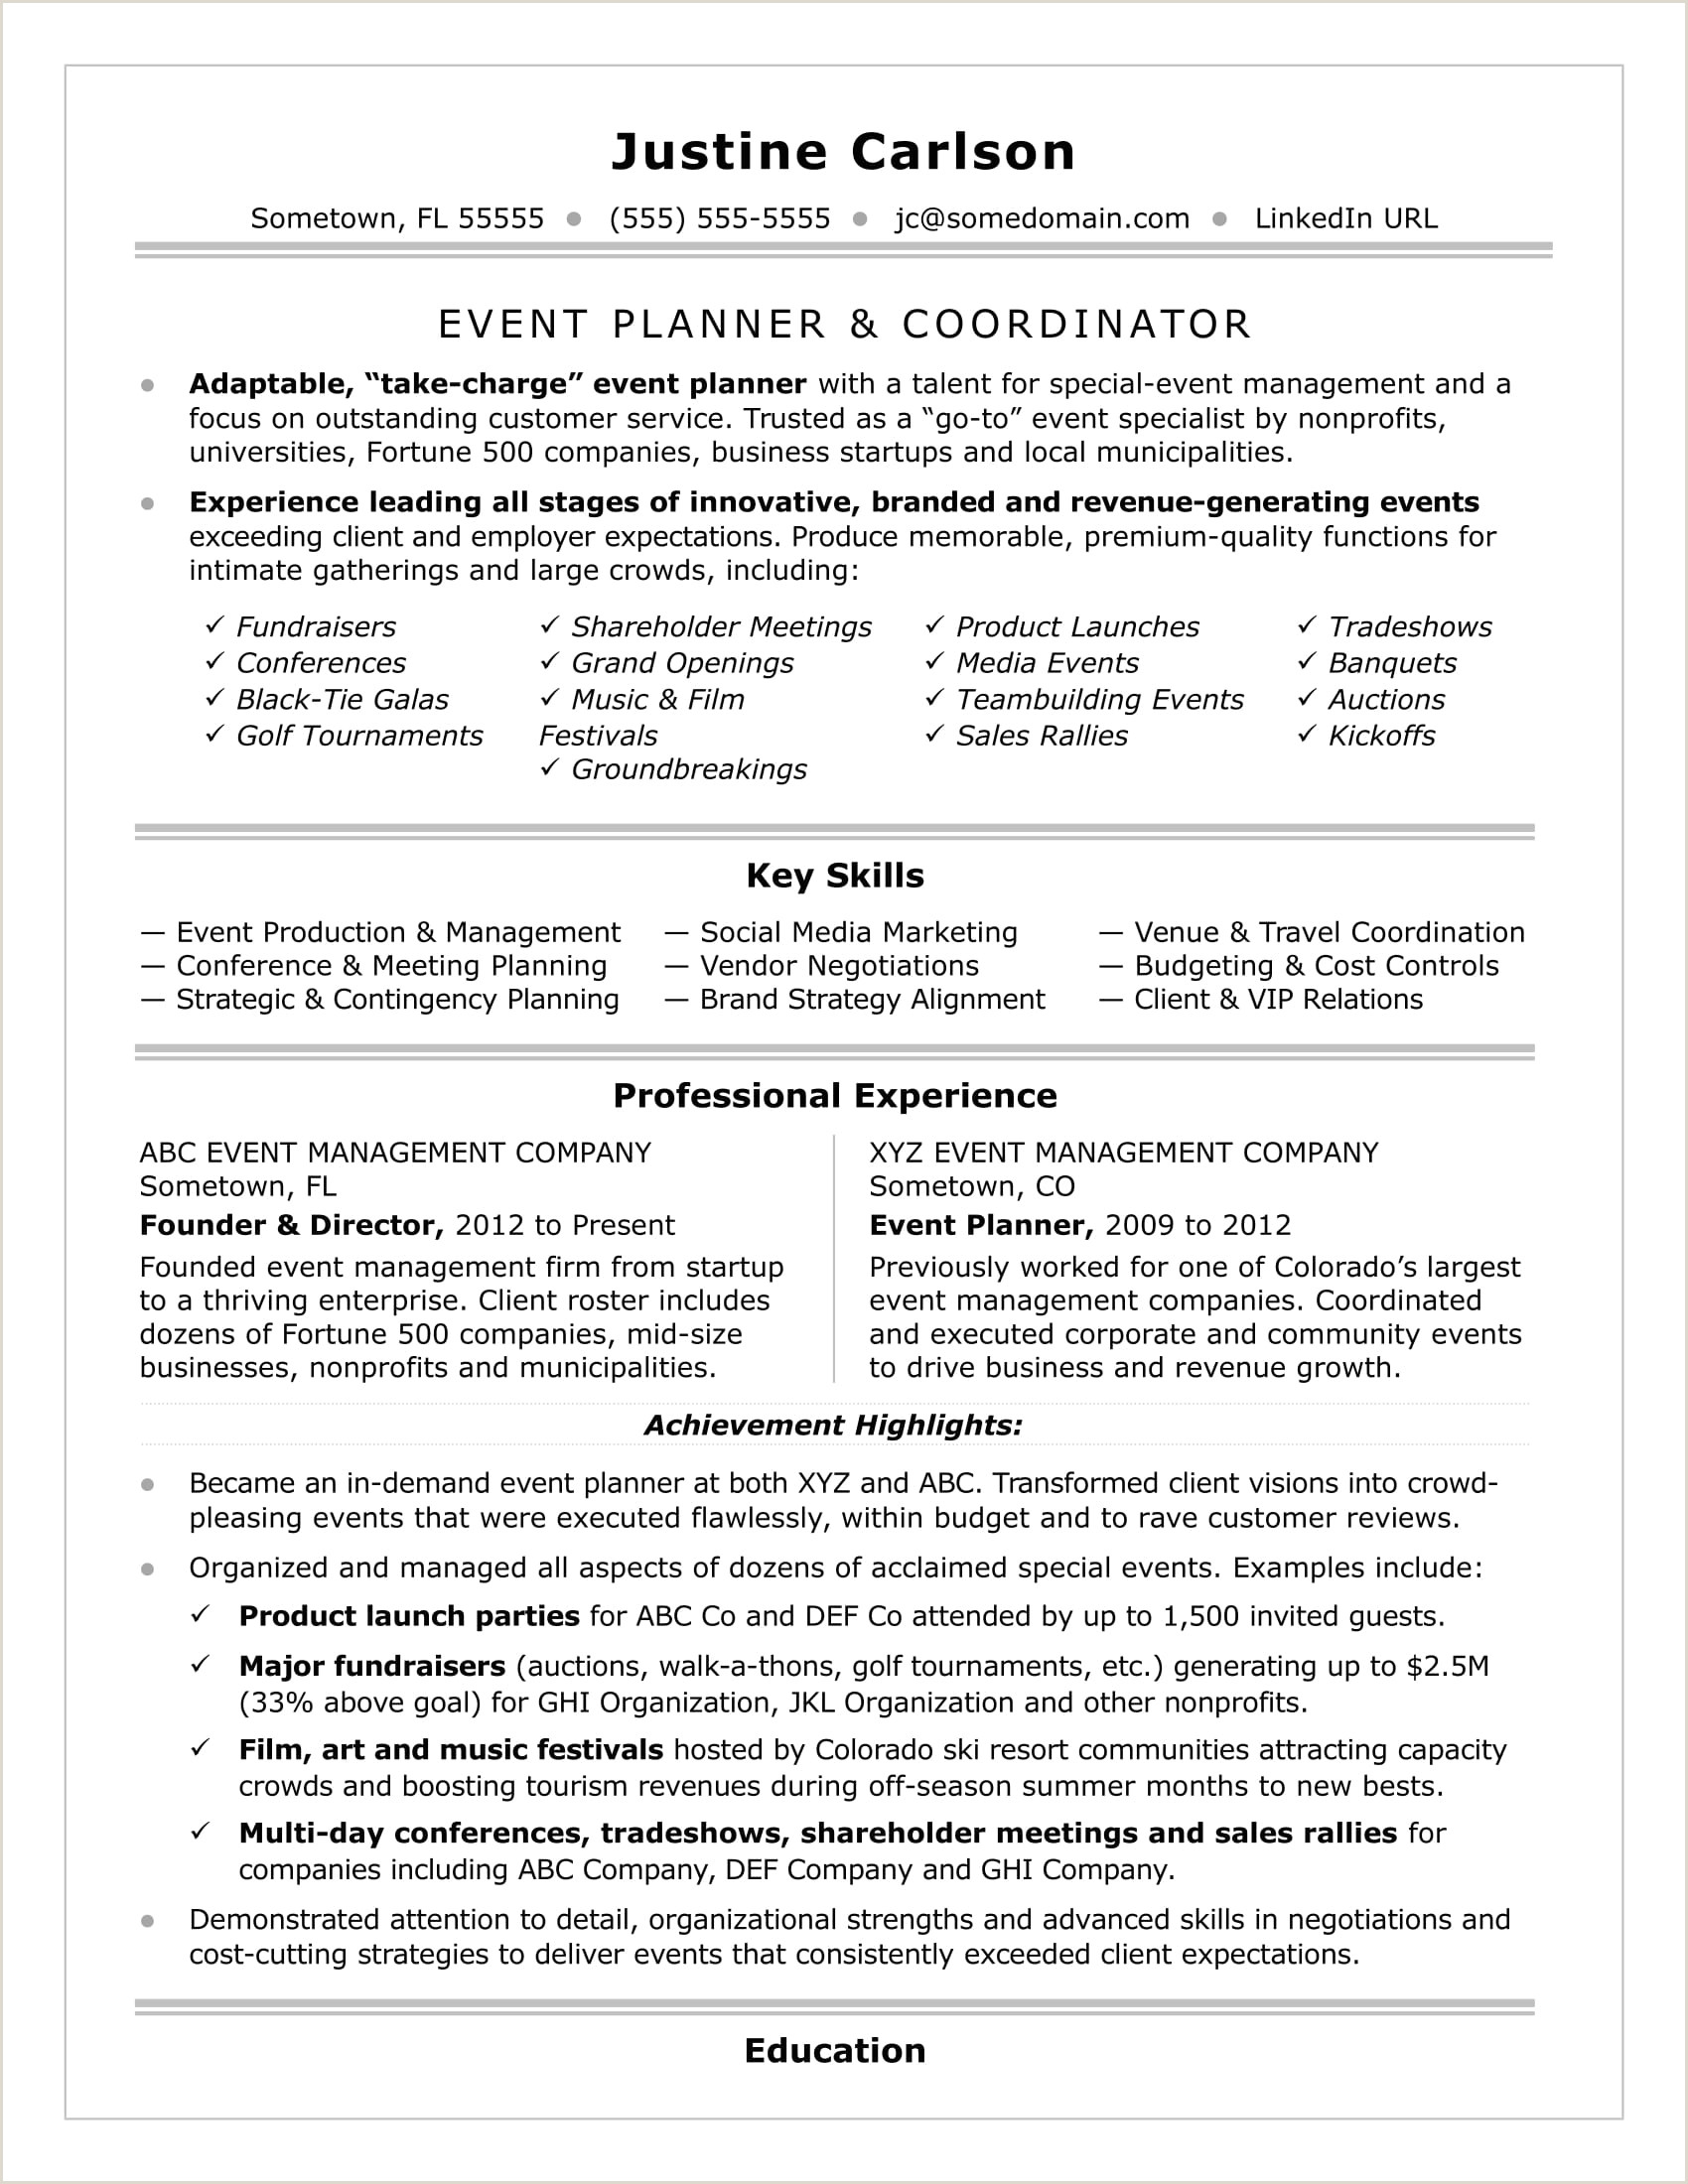 Event Planner Resume the Most Important Thing Your Resume Executive Summary